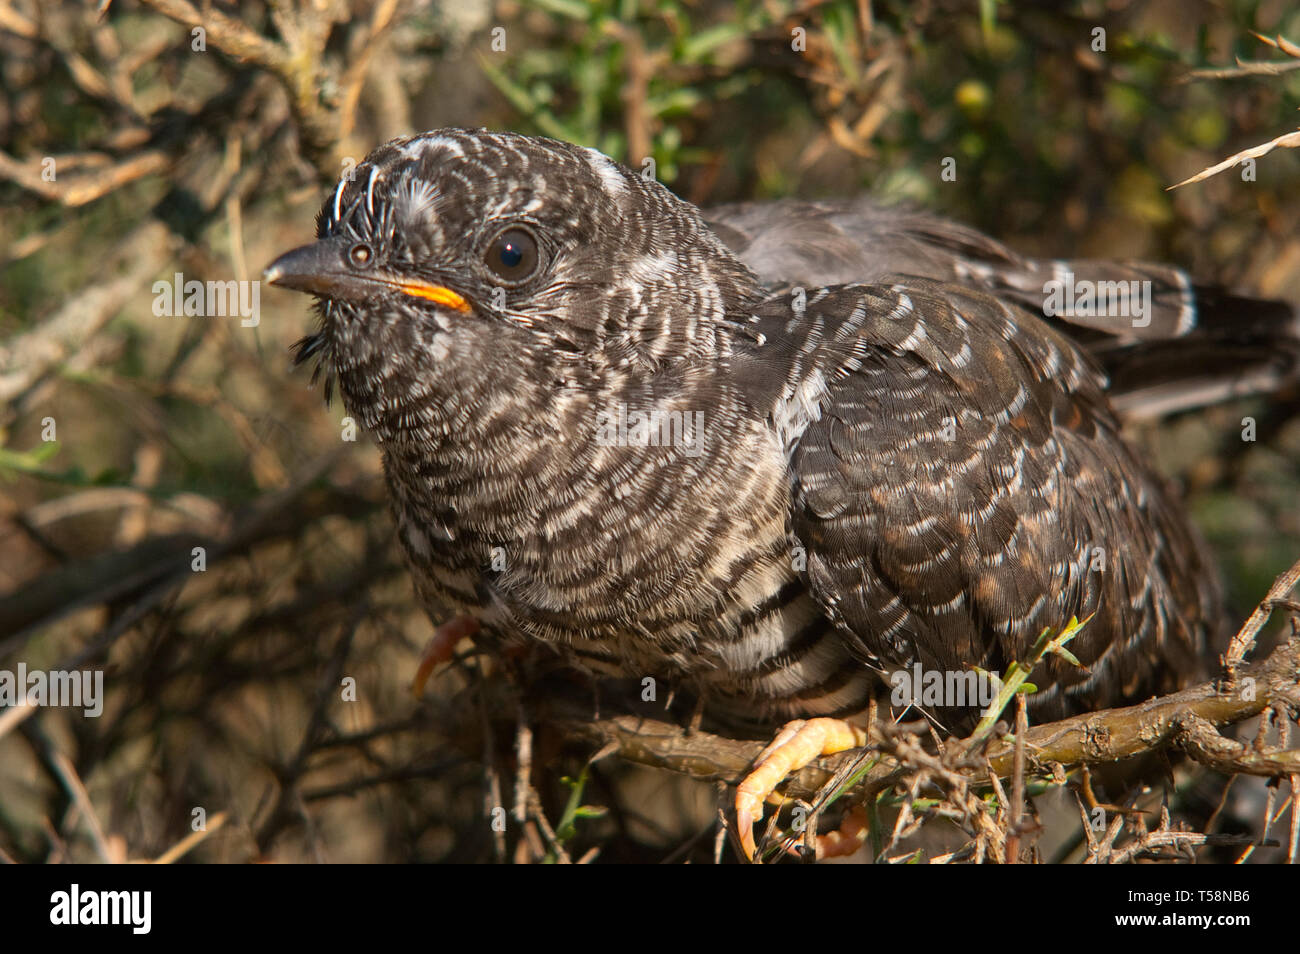 Common cuckoo - Cuculus canorus Young in the nest - Stock Image